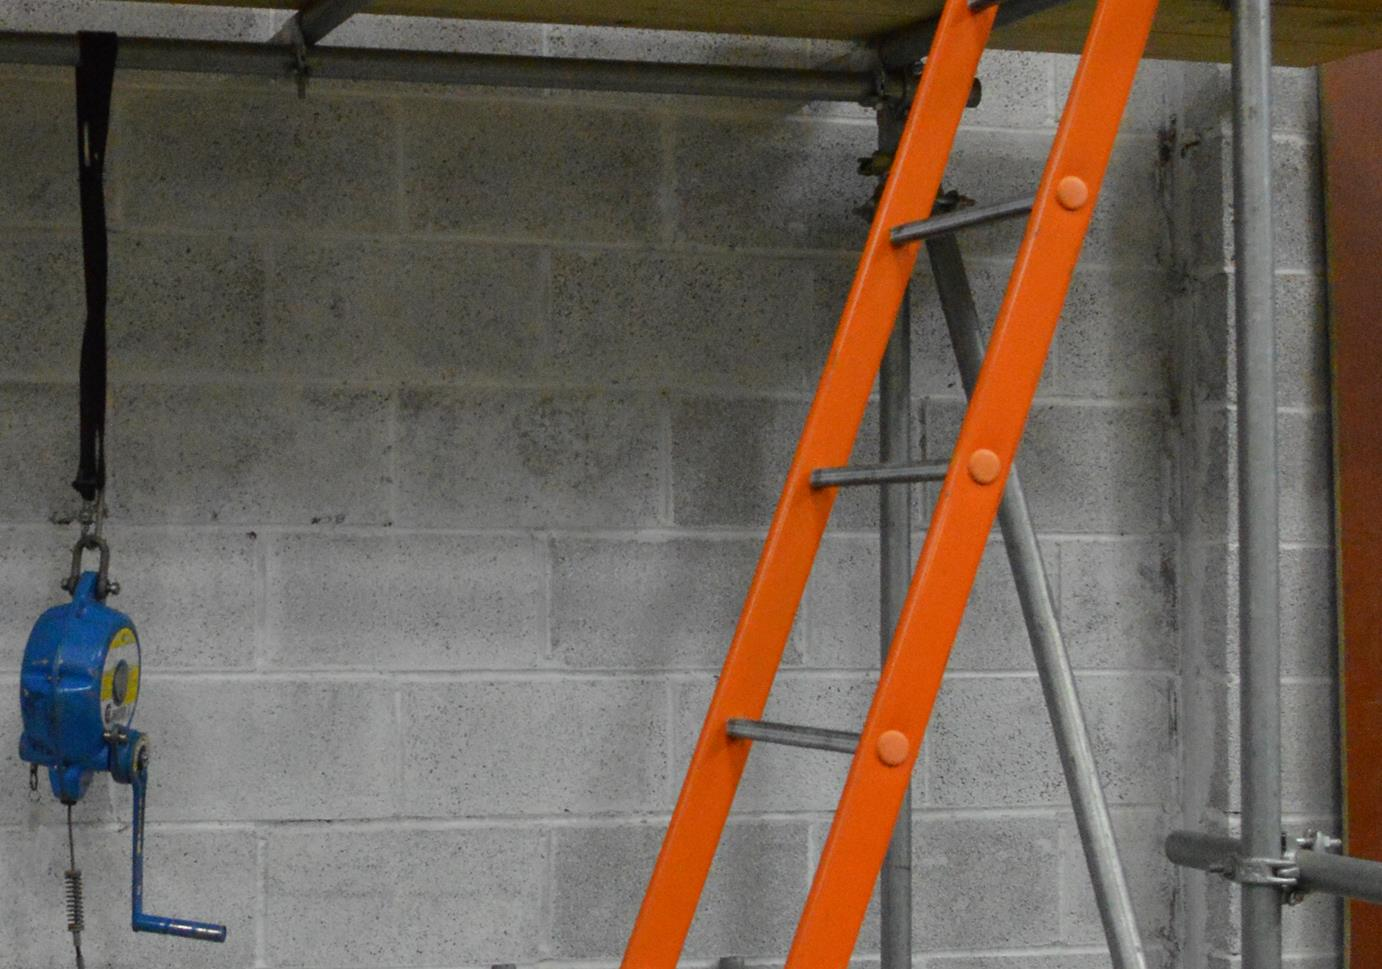 Ladder Safety & Inspection